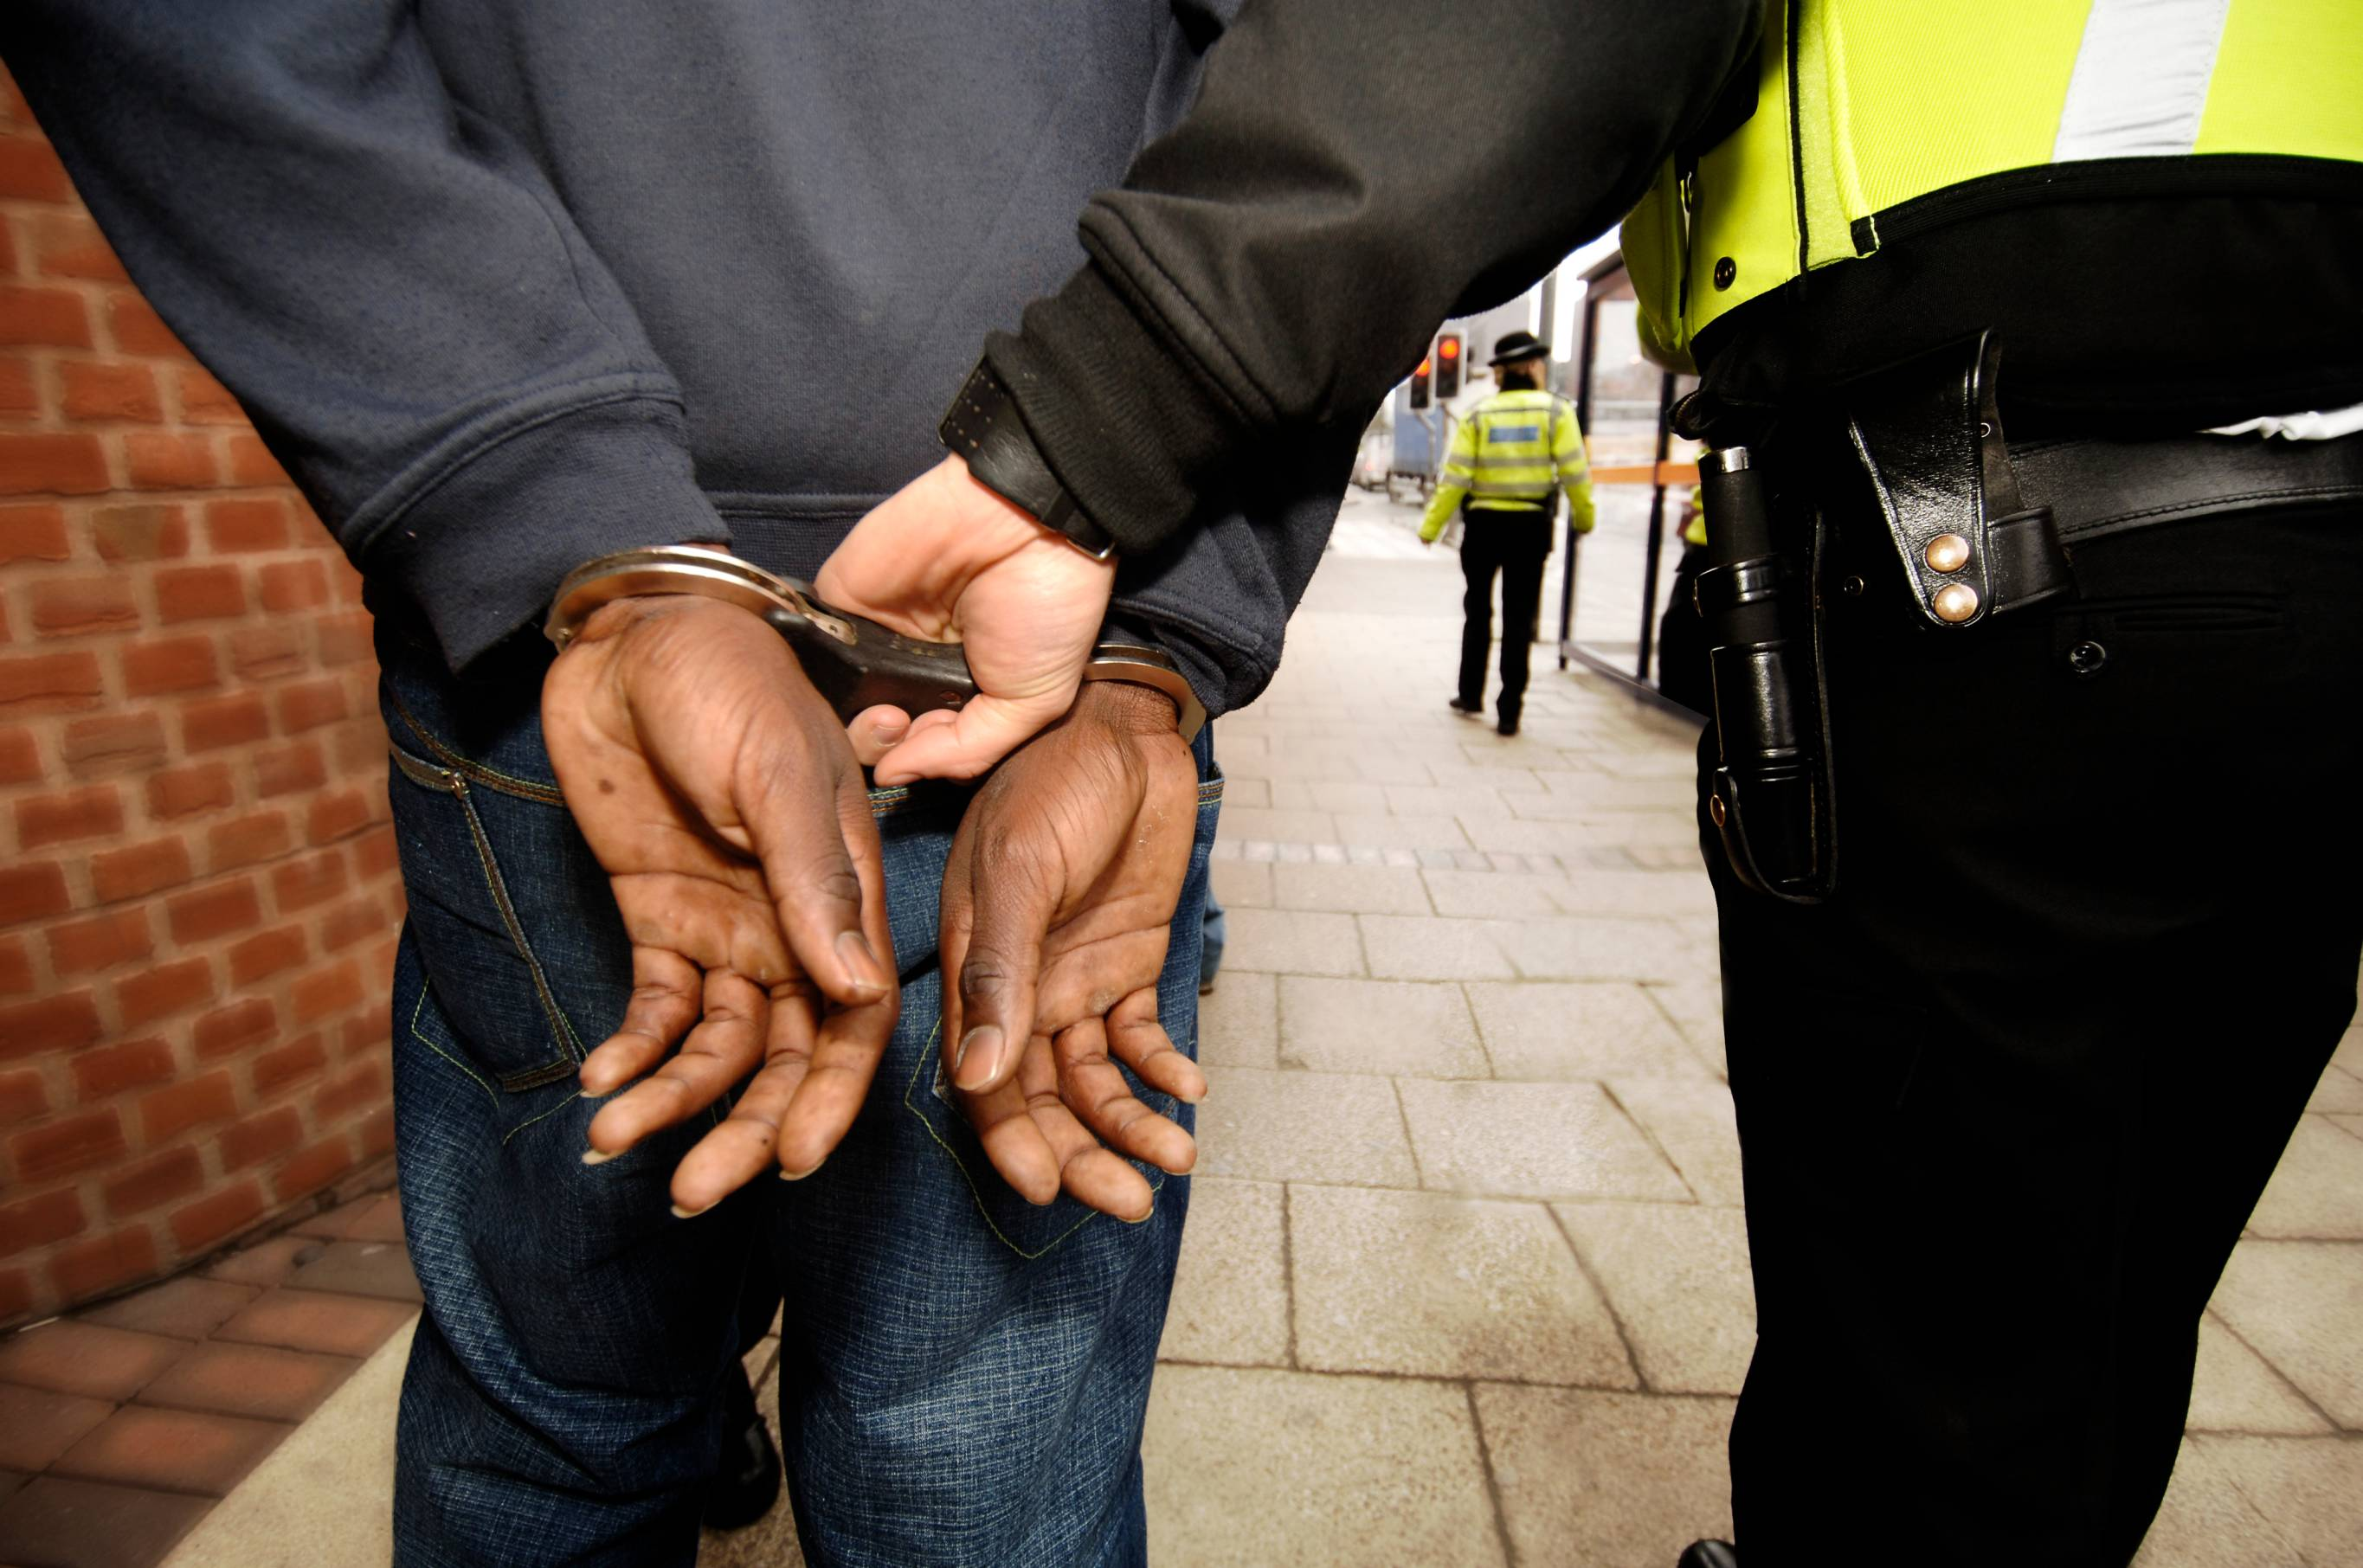 UNFAIR SYSTEM:  Experts have called for a radical overhaul to stop the disproportionate number of BAME offenders in the system